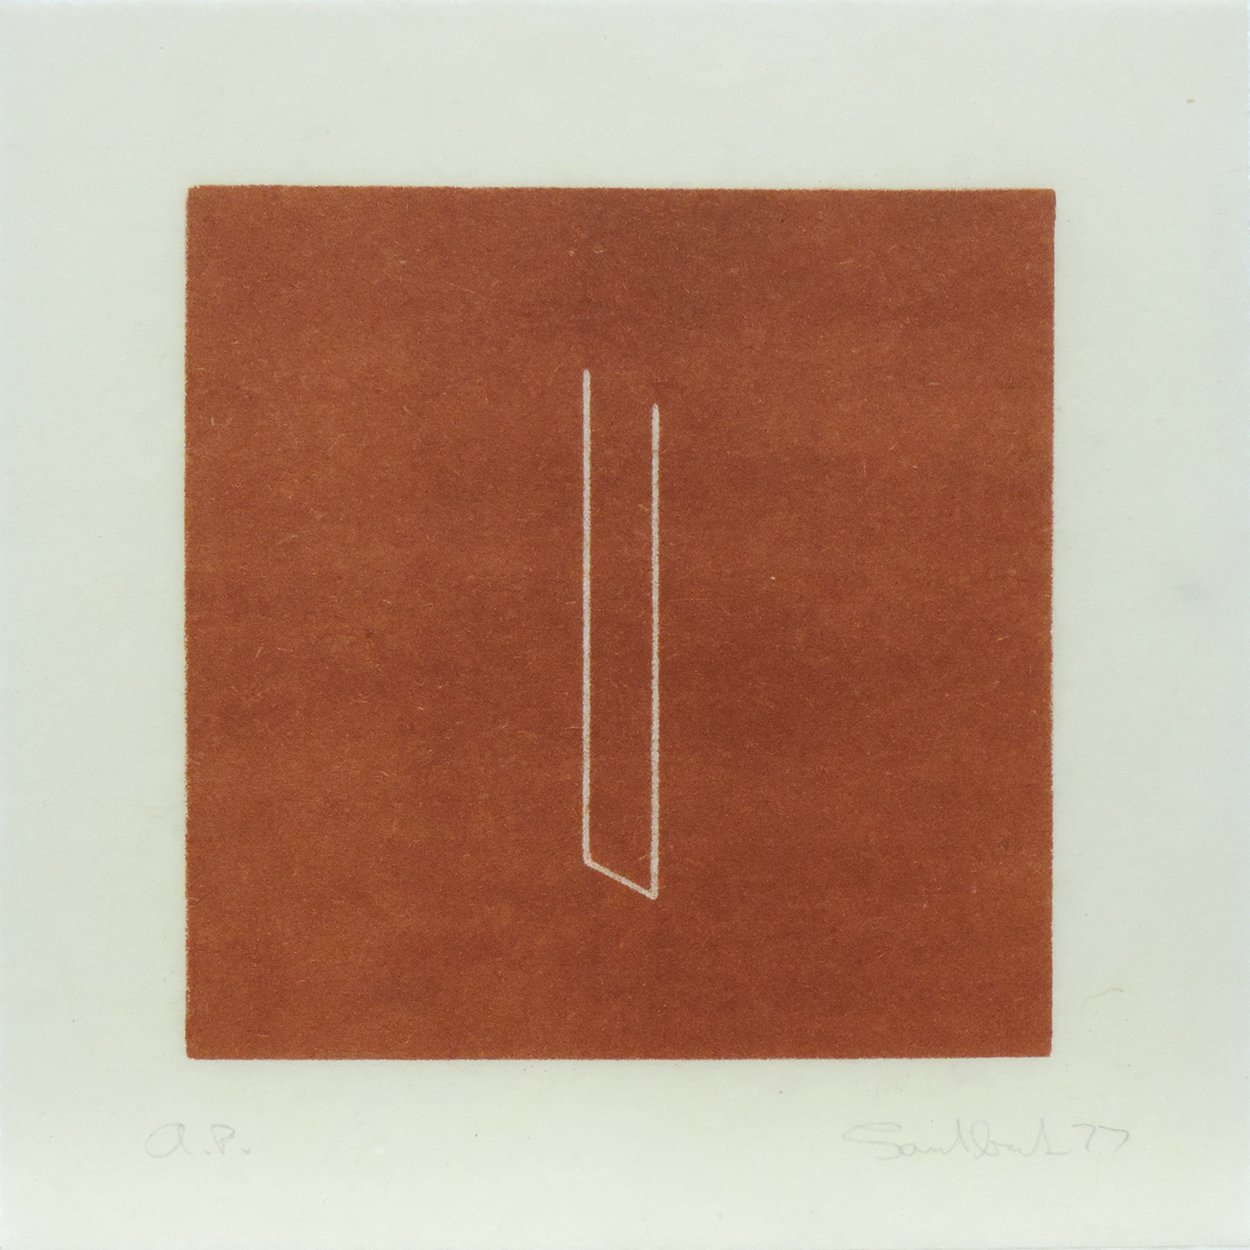 Untitled [from an untitled portfolio]|lithograph on handmade paper with cut edge|19 x 19.1 cm|1977